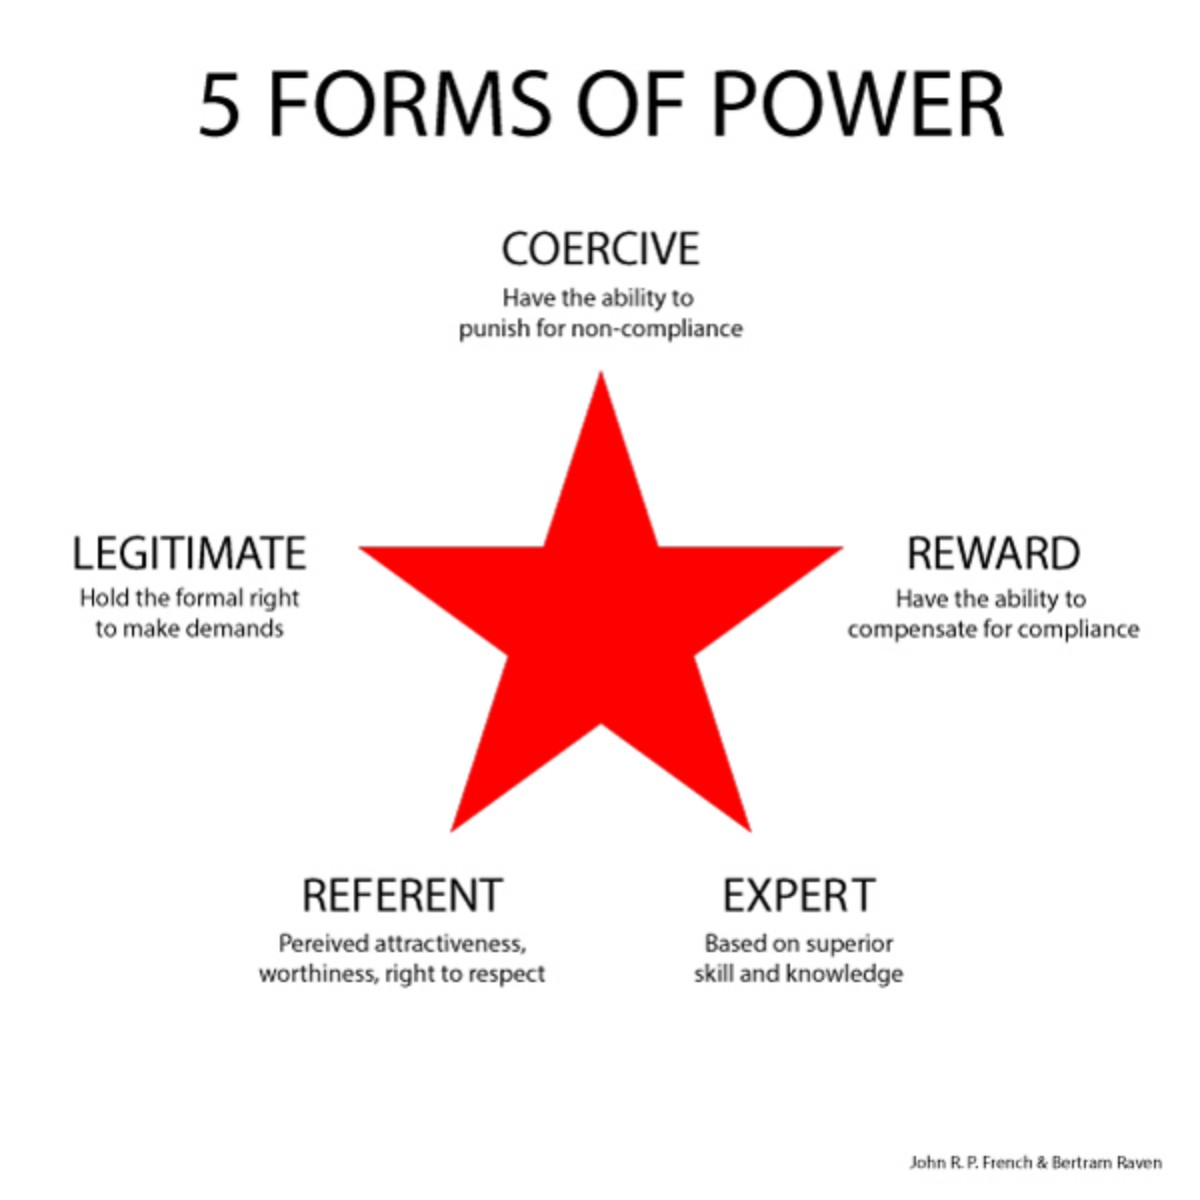 the use of various forms of power How we use energy we divide our energy use among four economic sectors: residential, commercial, transportation, and industrial heating and cooling our homes, lighting office buildings, driving cars and moving freight, and manufacturing the products we rely on in our daily lives are all functions that require energy.